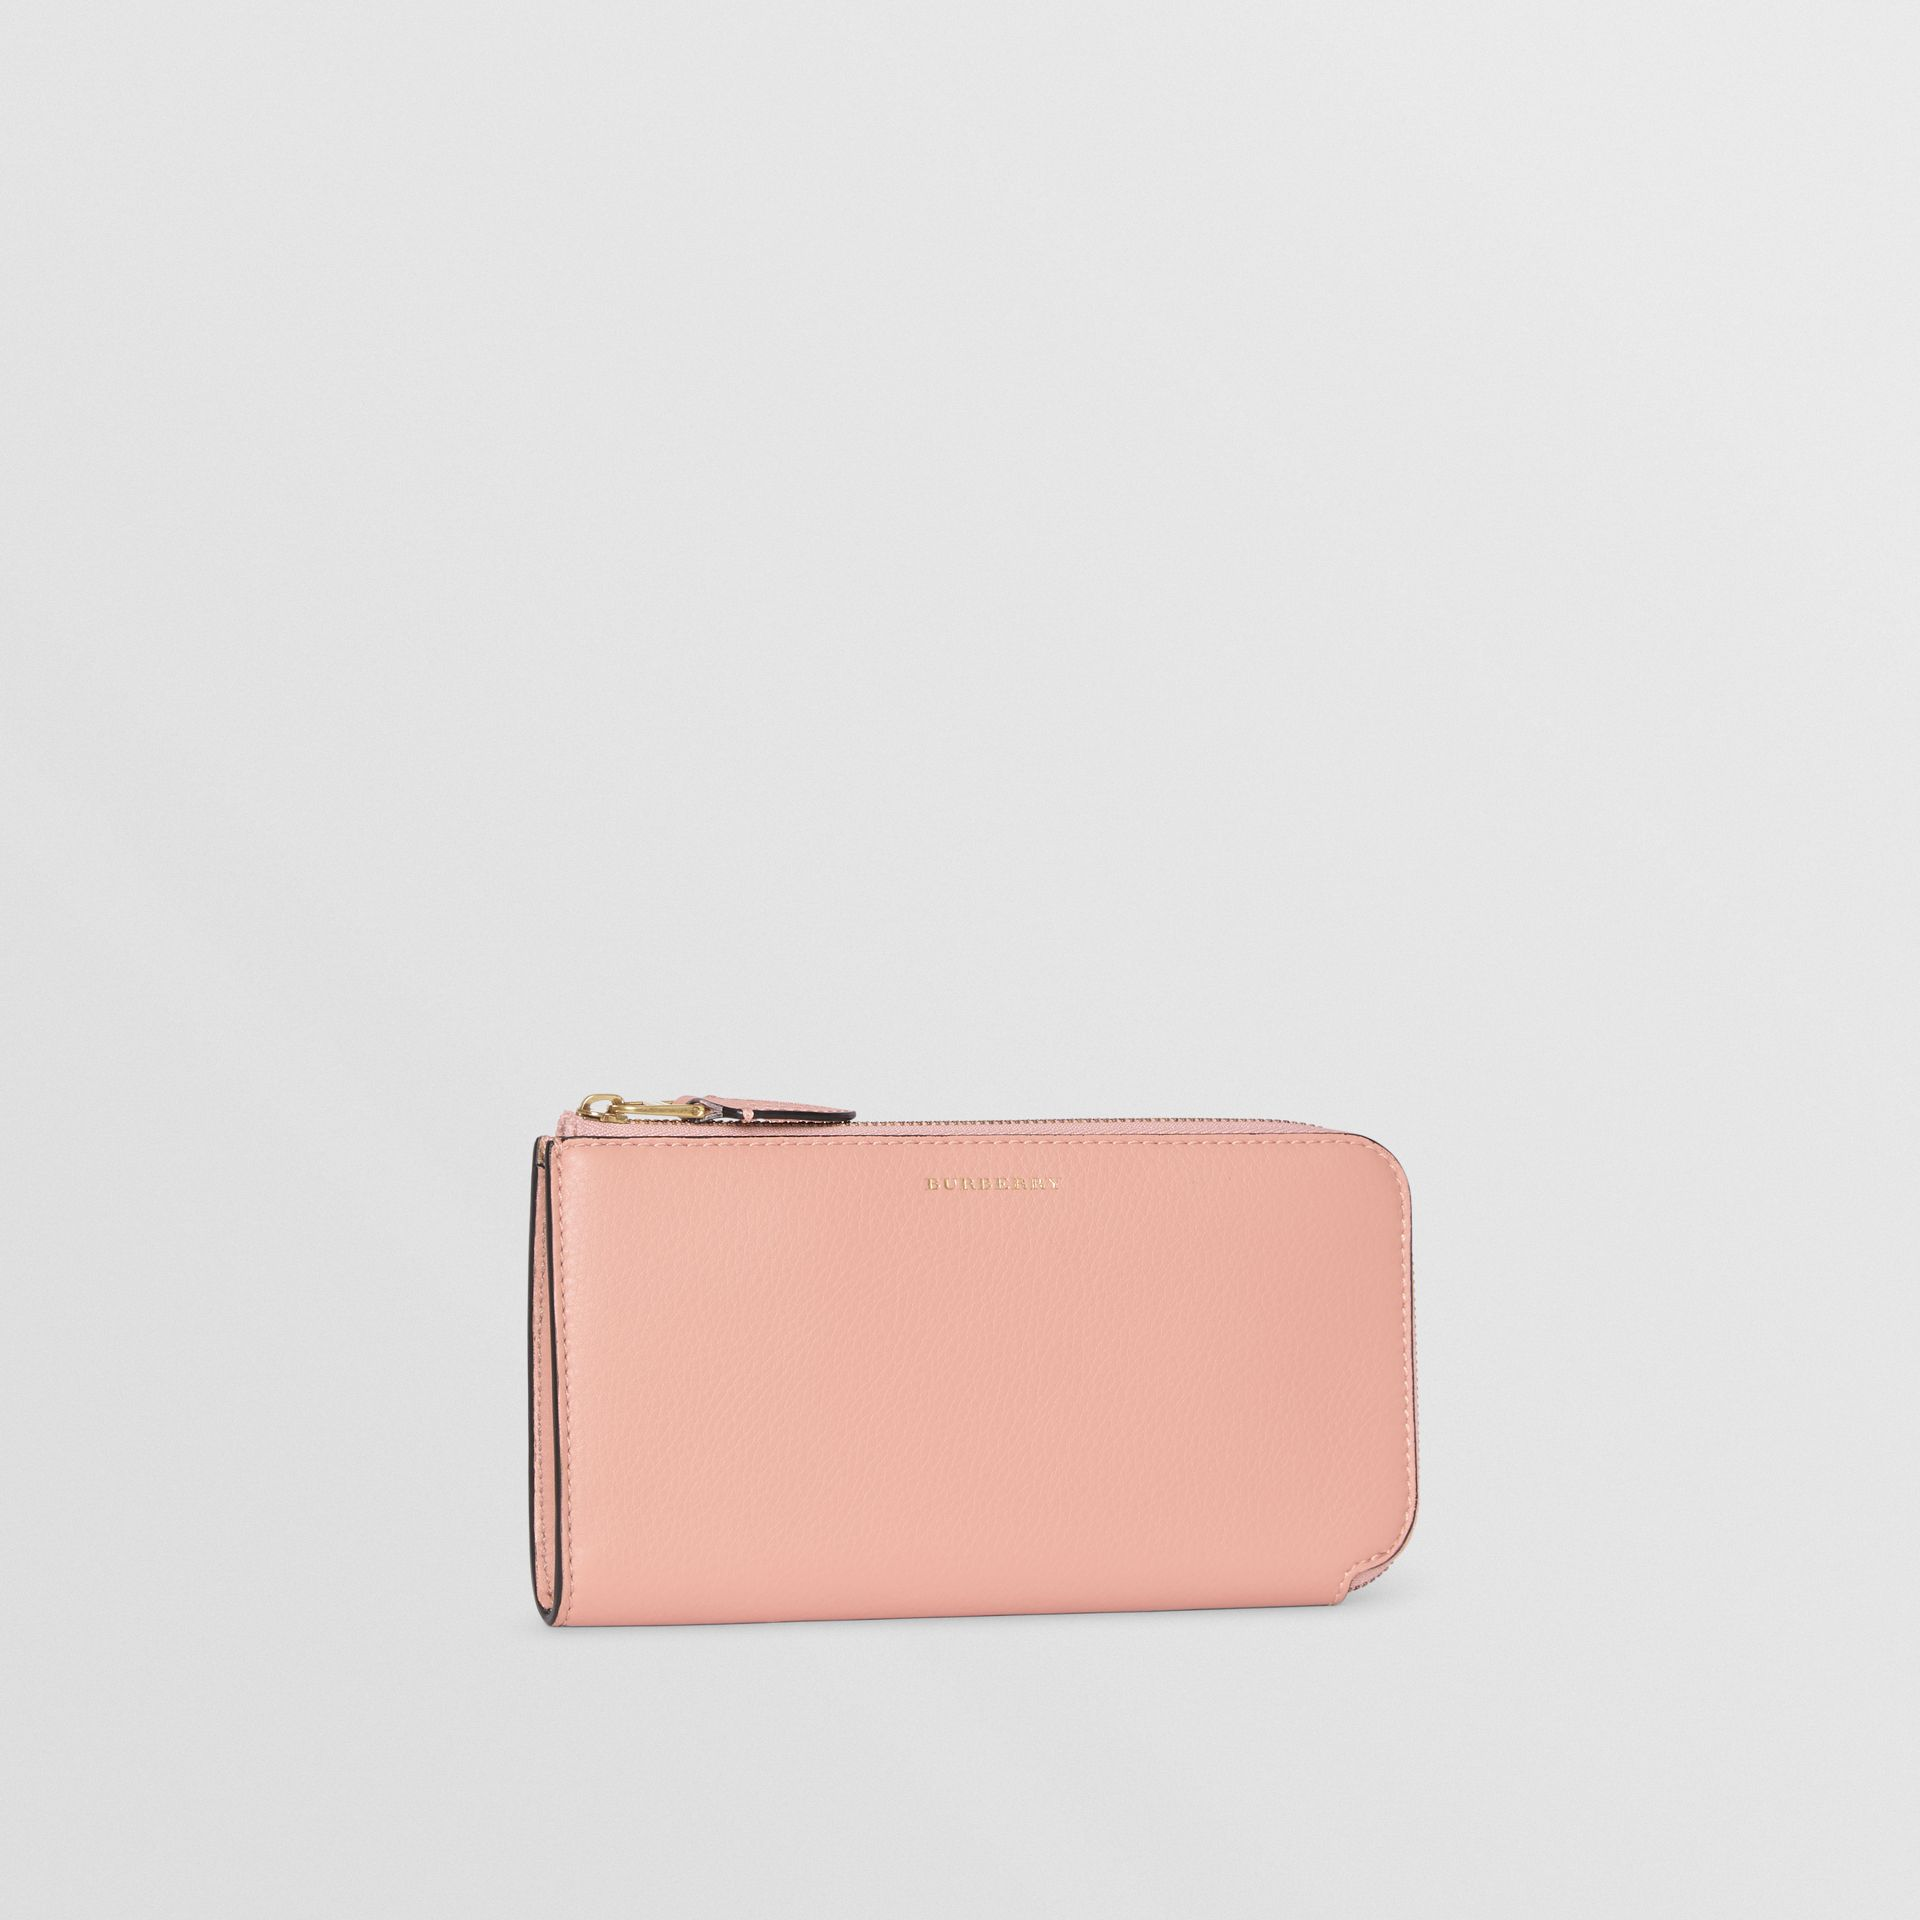 Two-tone Leather Ziparound Wallet and Coin Case in Ash Rose - Women | Burberry Canada - gallery image 5